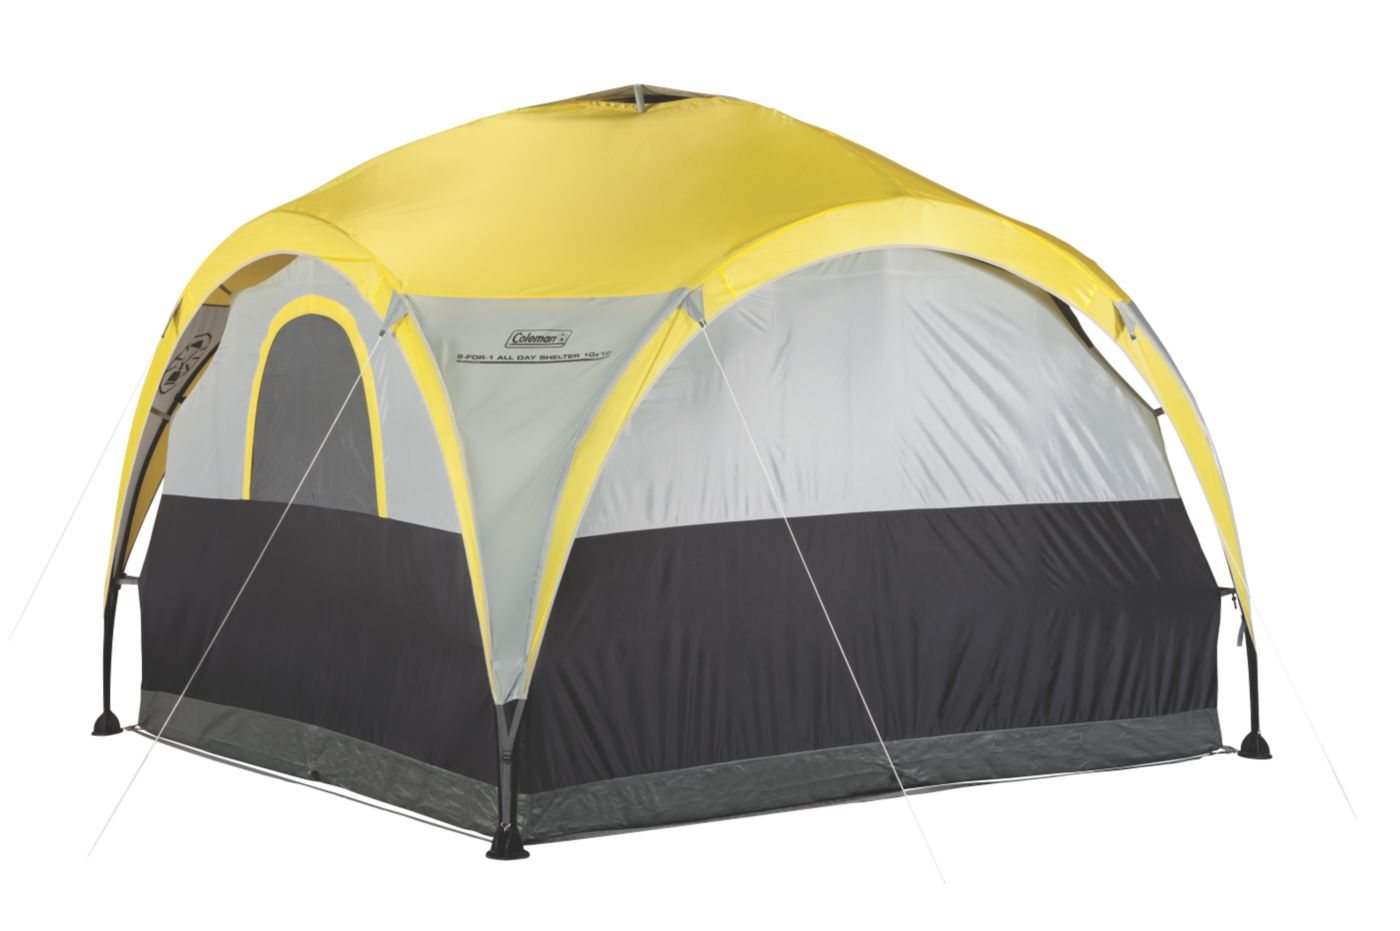 ... Tent · 2-For-1 All Day 4-Person Shelter u0026 ...  sc 1 st  Coleman & 4 Person Dome Tents | Coleman Tents | Coleman